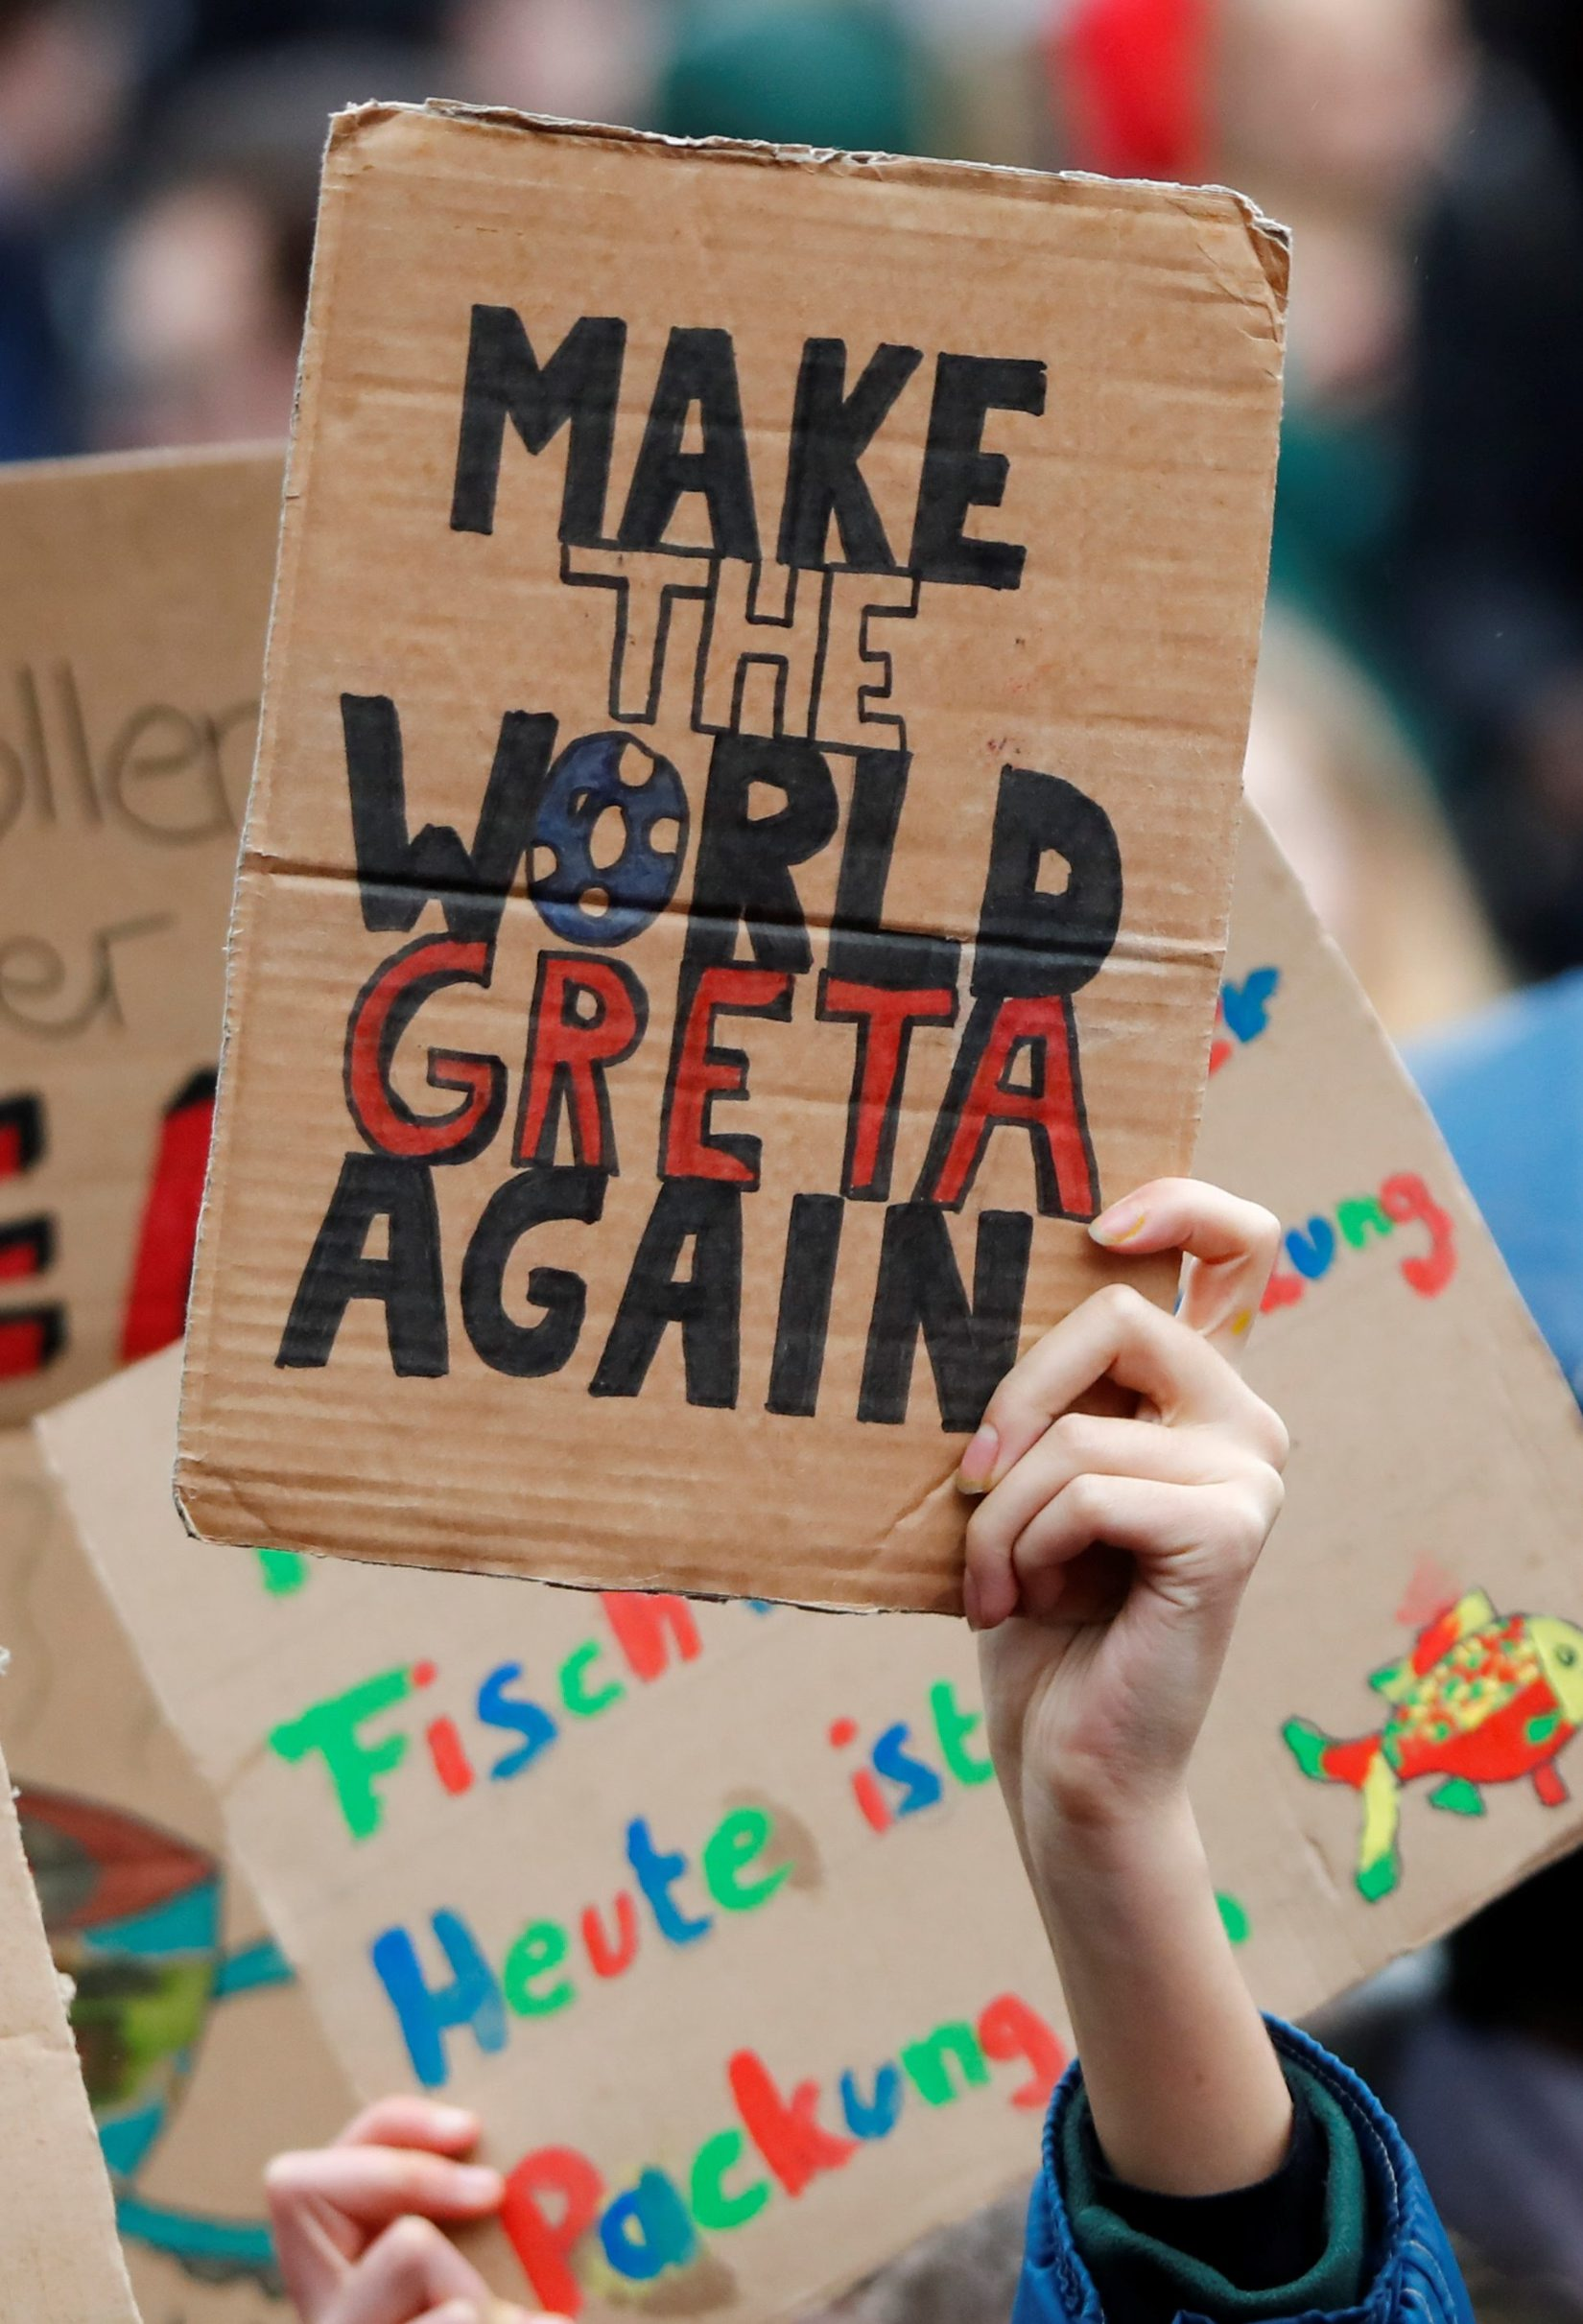 A students holds a placard to support Swedish environmental campaigner Greta Thunberg during a strike from school demanding action on climate change at the town hall square of Duesseldorf, Germany, March 15, 2019.  REUTERS/Wolfgang Rattay